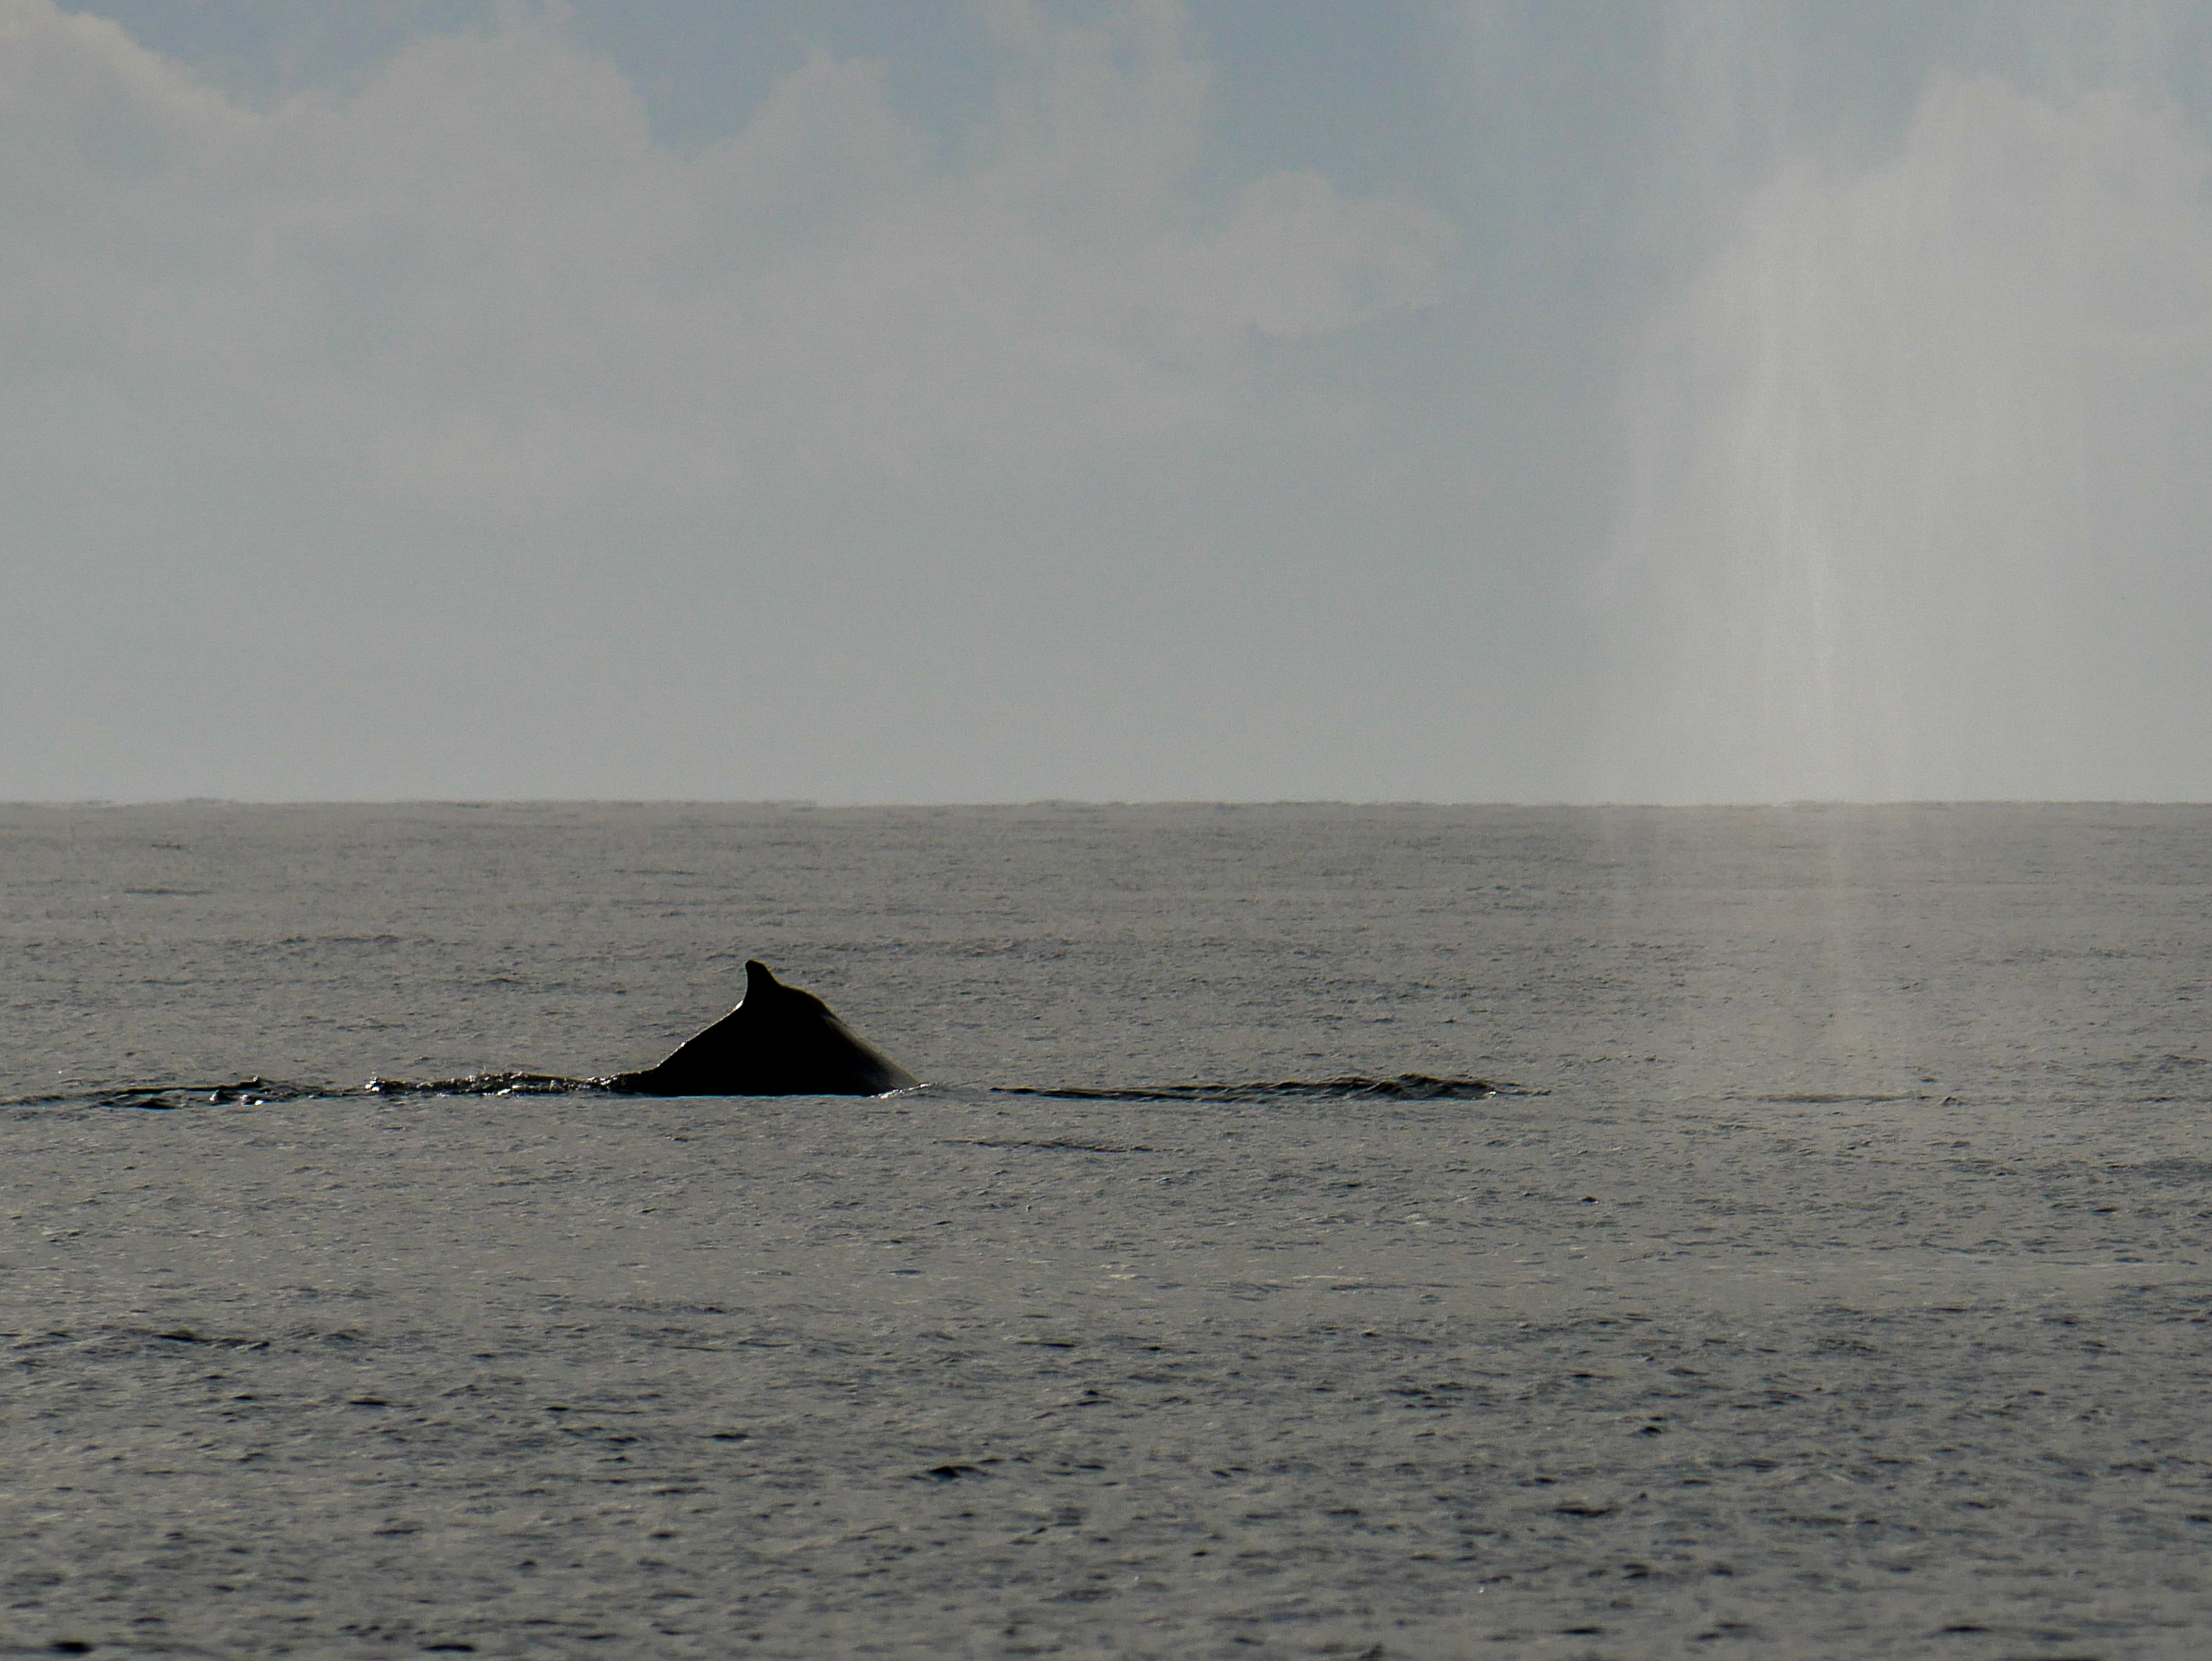 Humpback on the right just beginning a surfacing, evident by the big blow in the air, while the humpback on the left is just finishing a surfacing! Photo by Rodrigo Menezes - 3:30 tour.